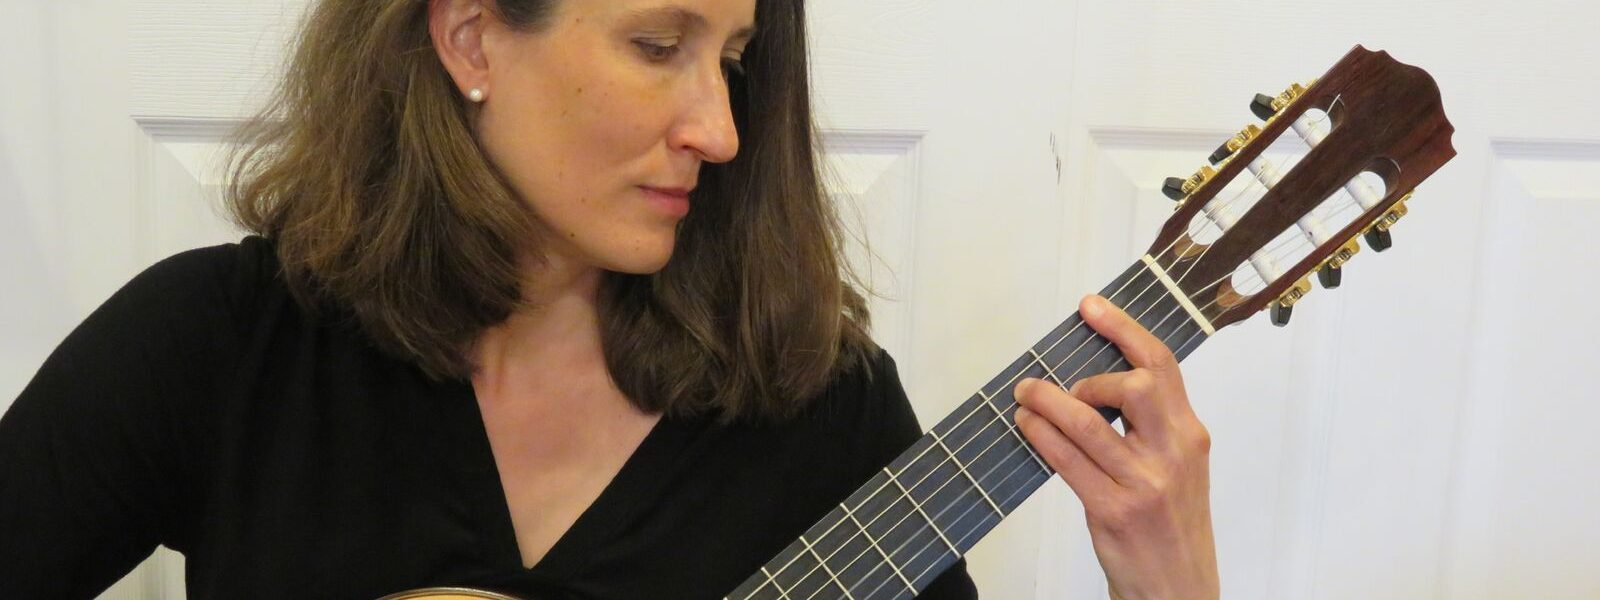 Meet Lorian Bartle, A Classical Guitarist Changing the Face of Music